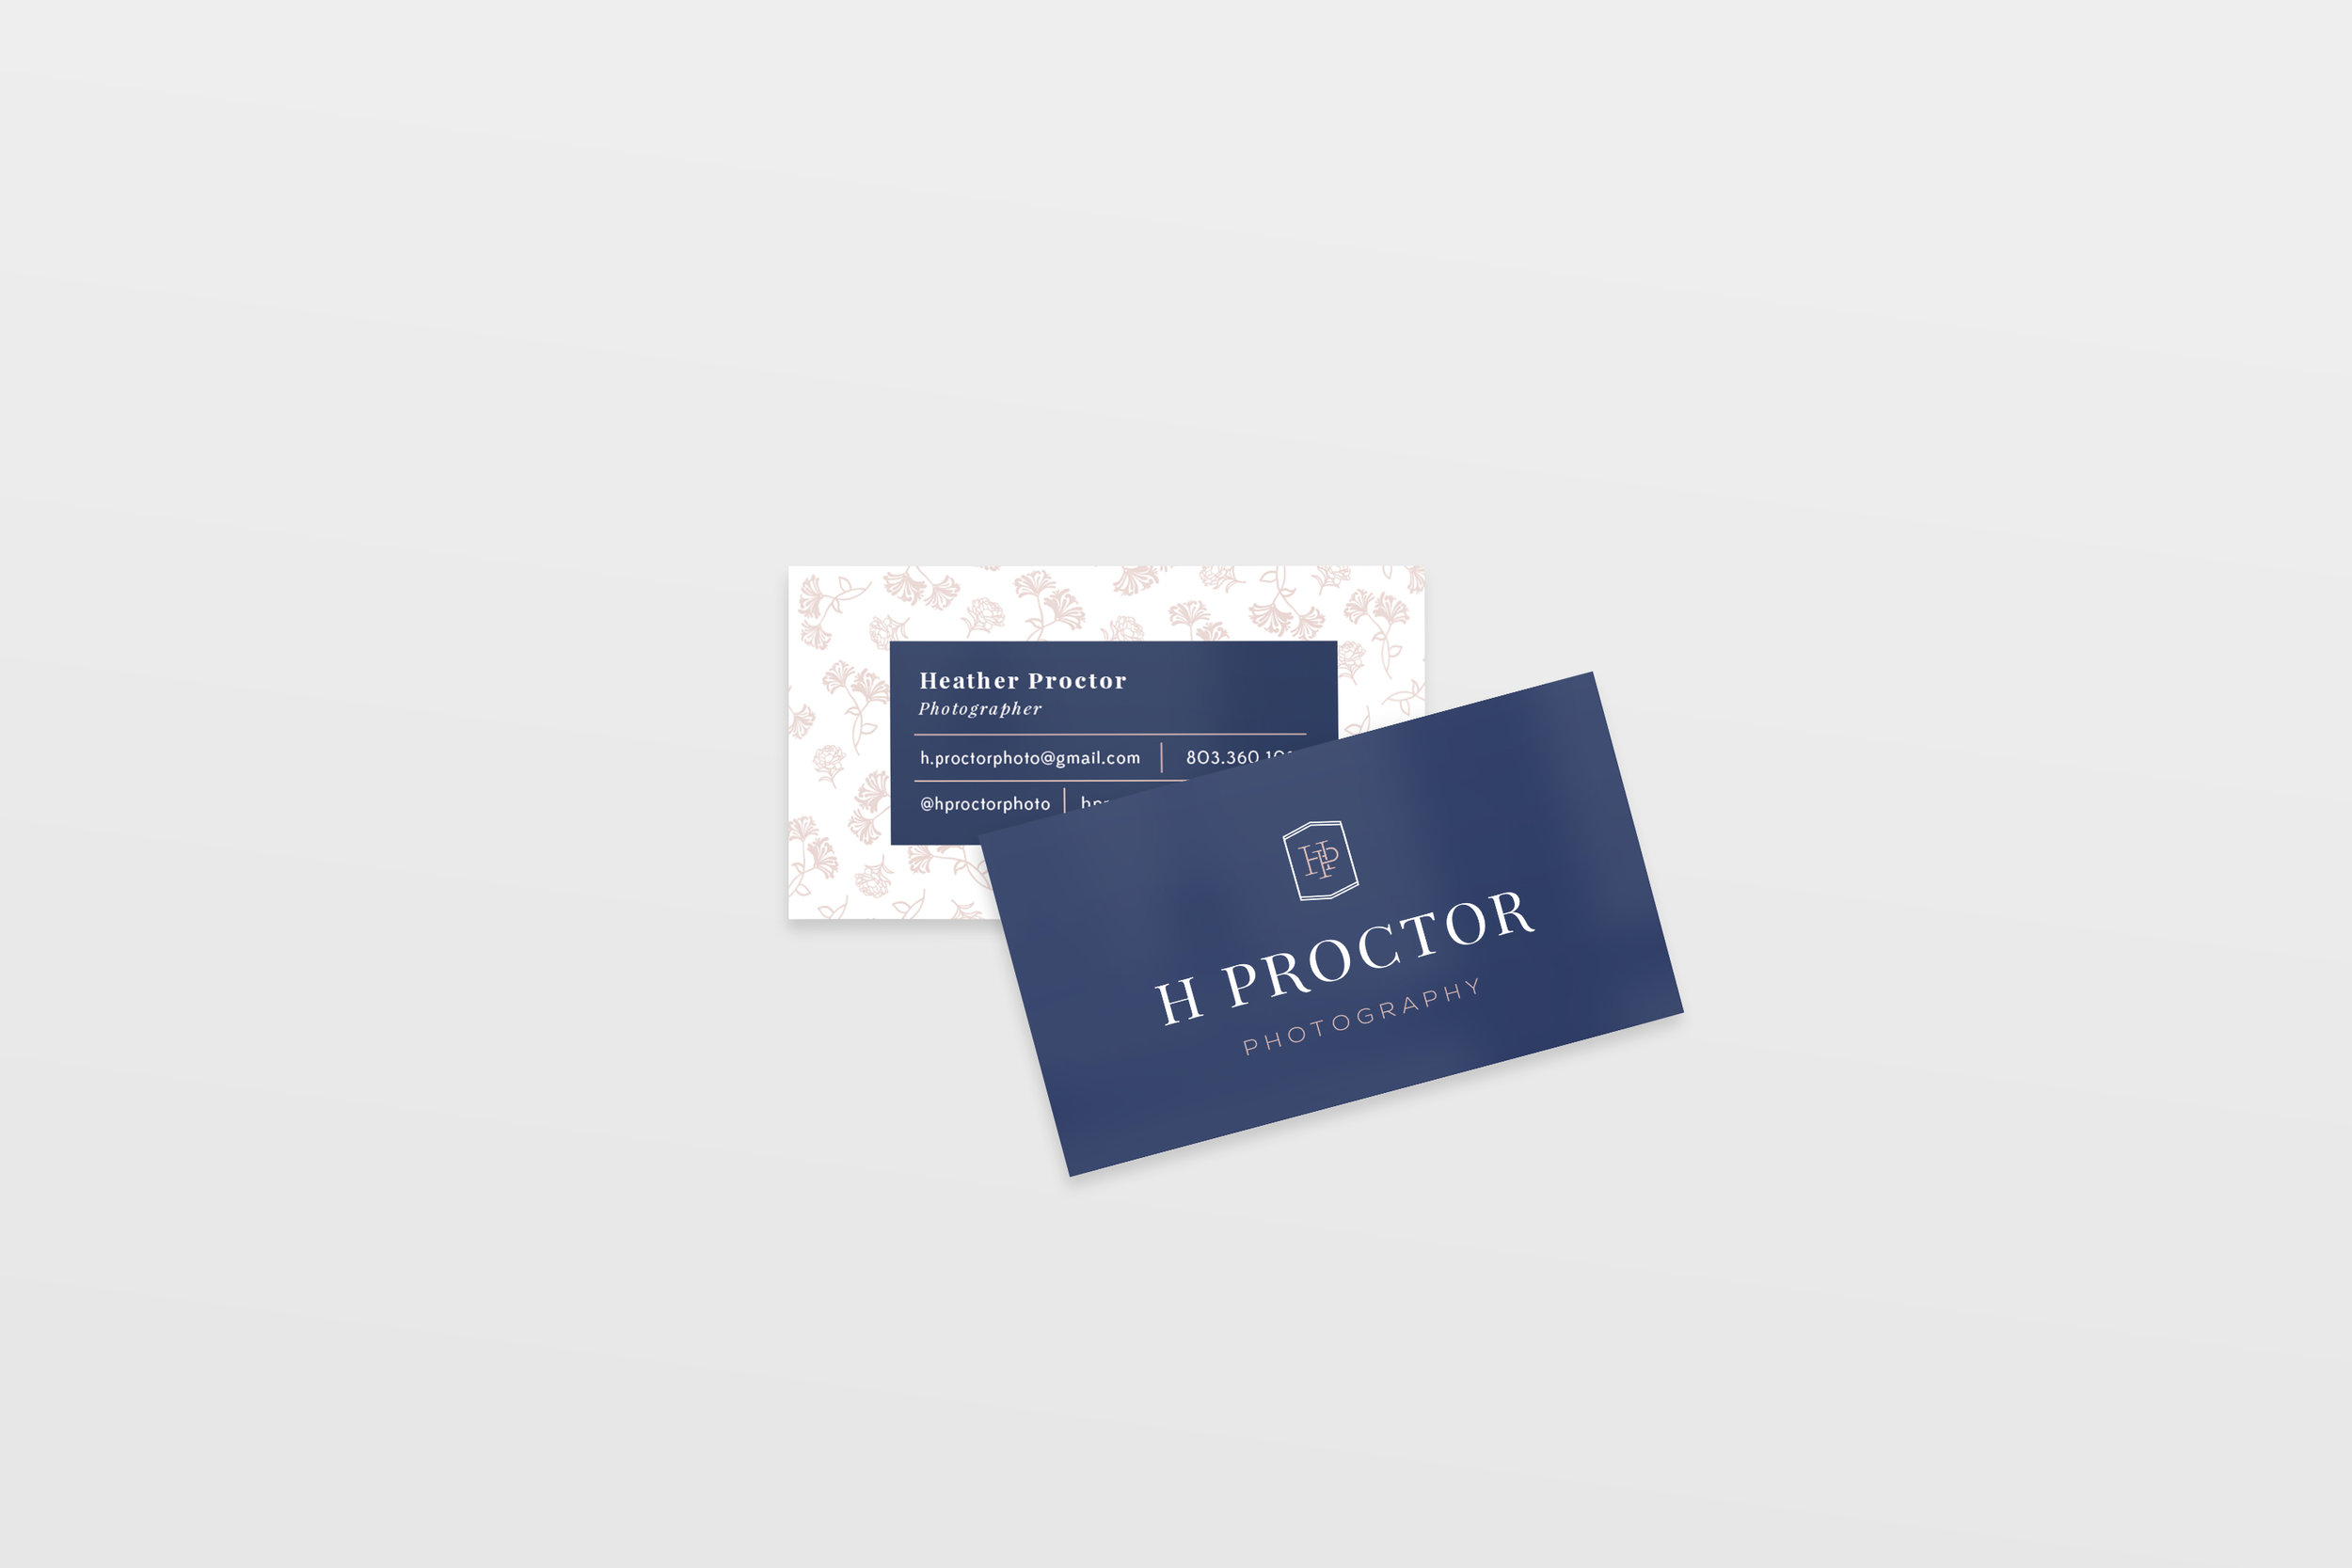 h proctor photography-wedding photographer-wedding business card-tulsa brand designer-hayley bigham designs